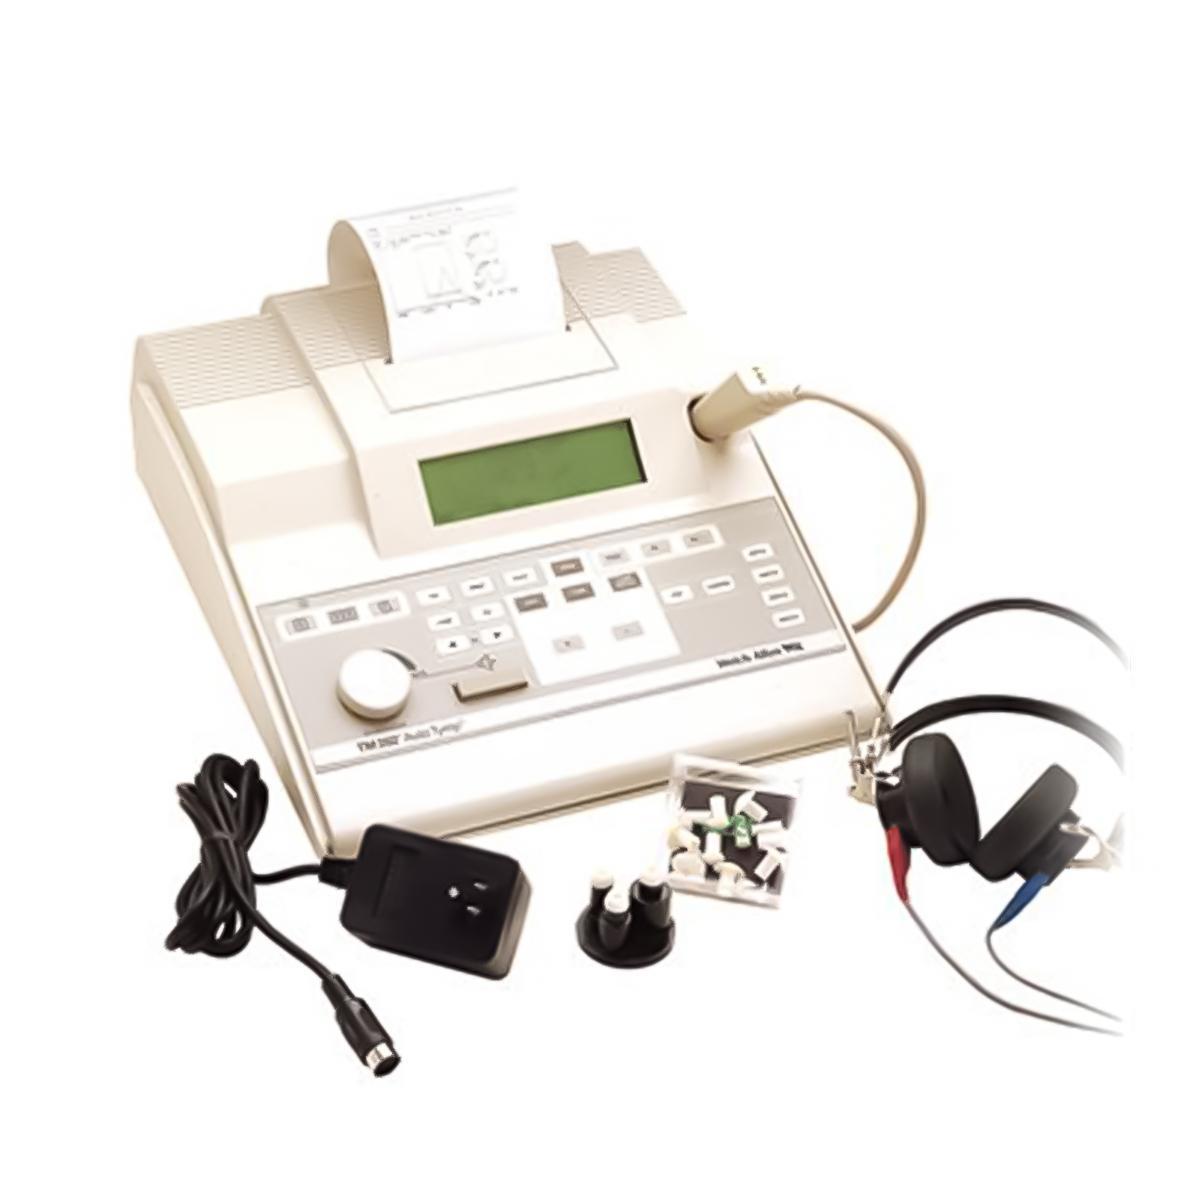 A white, tabletop Welch Allyn TM 262 AutoTymp Tympanometer with black over-the-ear headphones and a detachable power source.